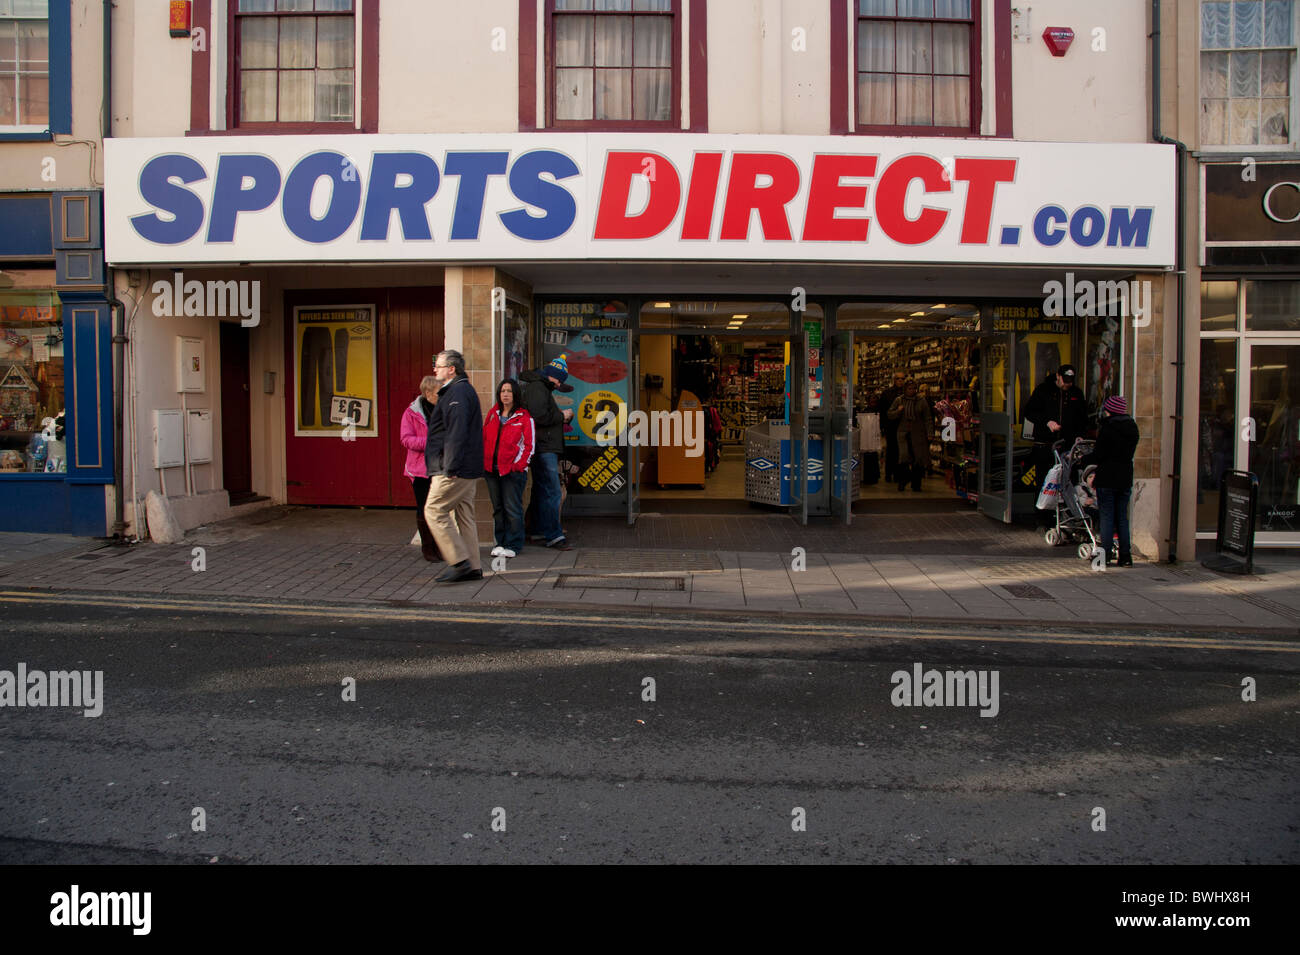 Sports Direct.com sportswear store shop UK - Stock Image